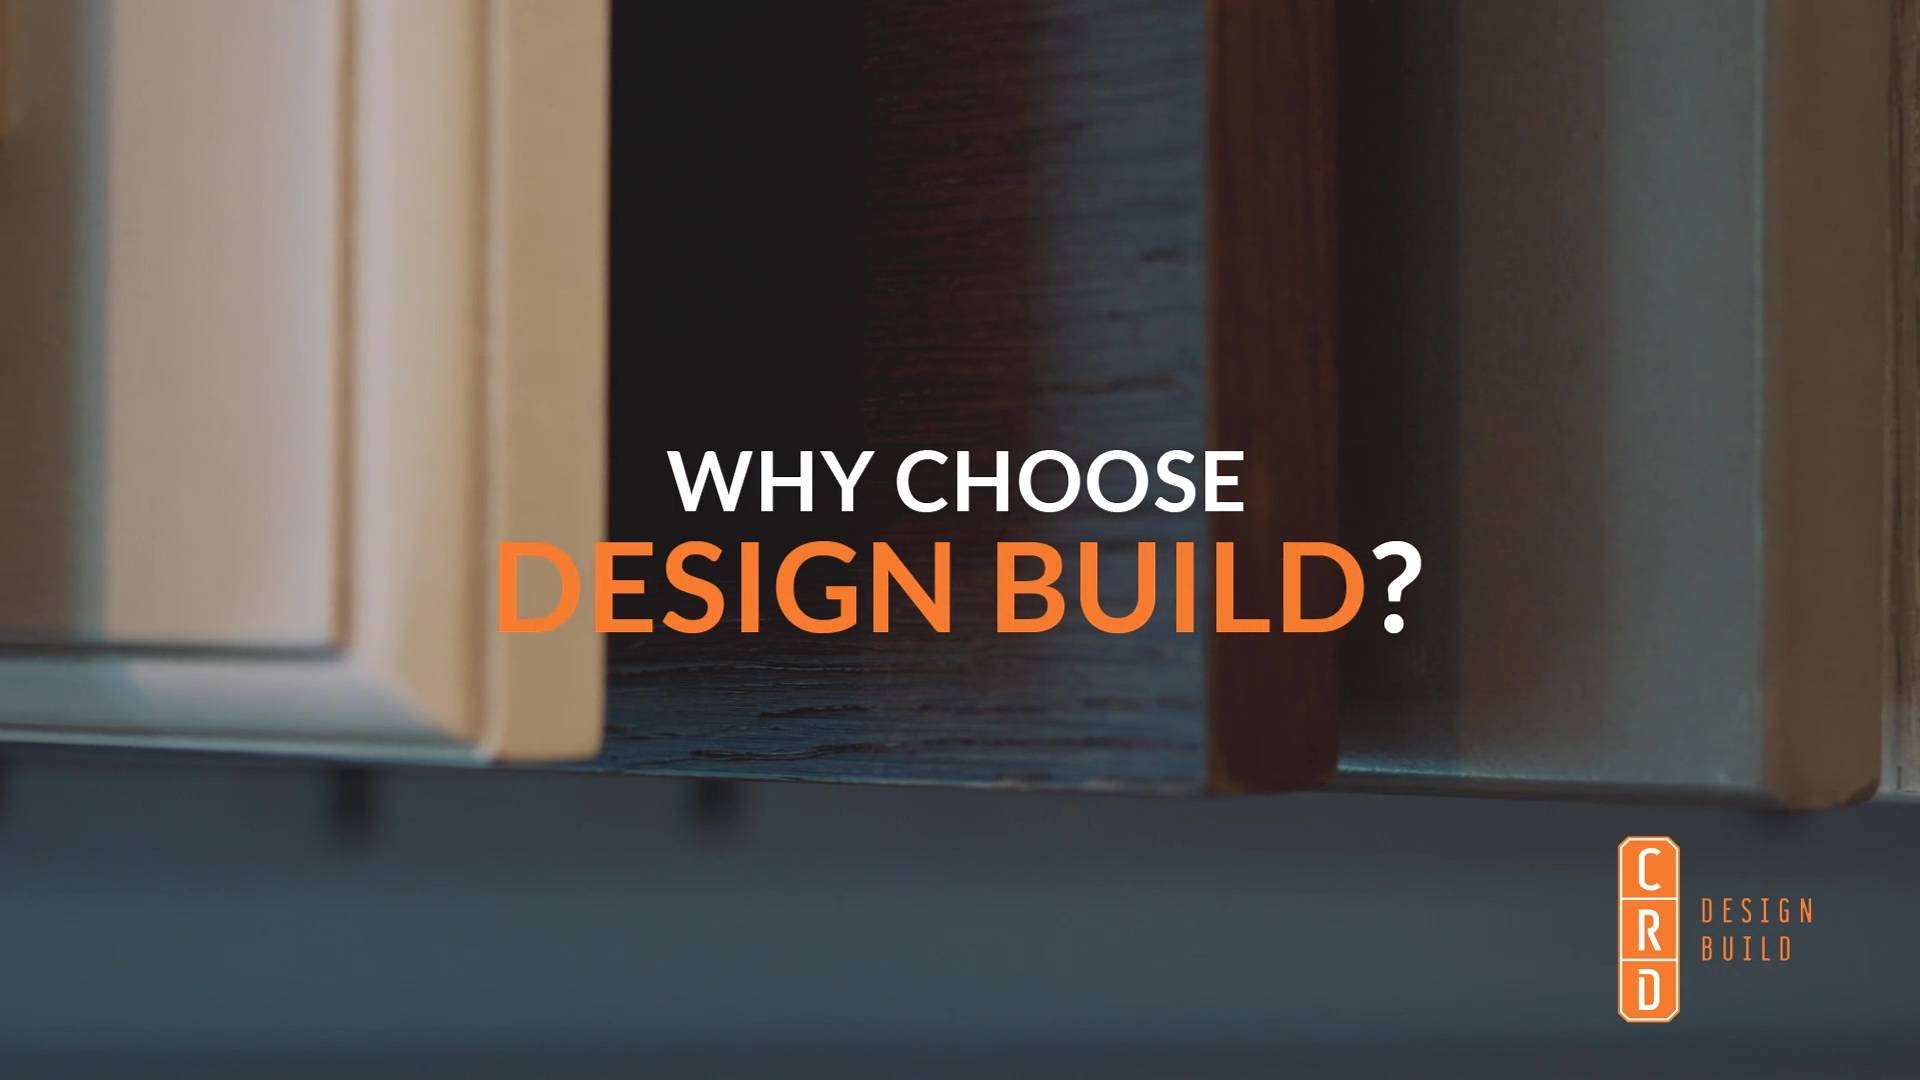 CRD - Why choose design build-1